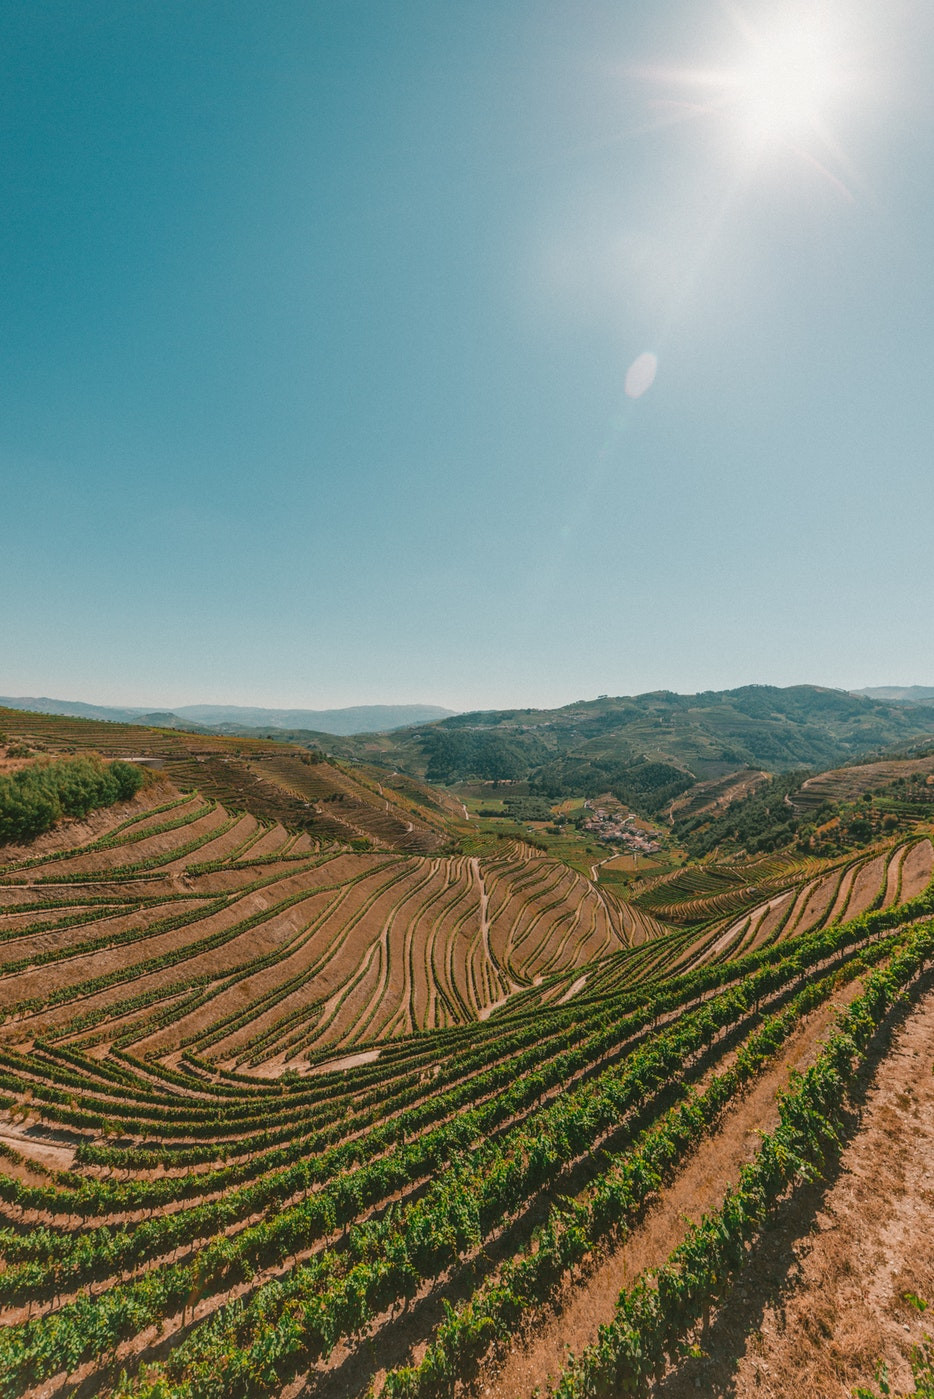 The complex system of vineyards in the Douro Wine Region